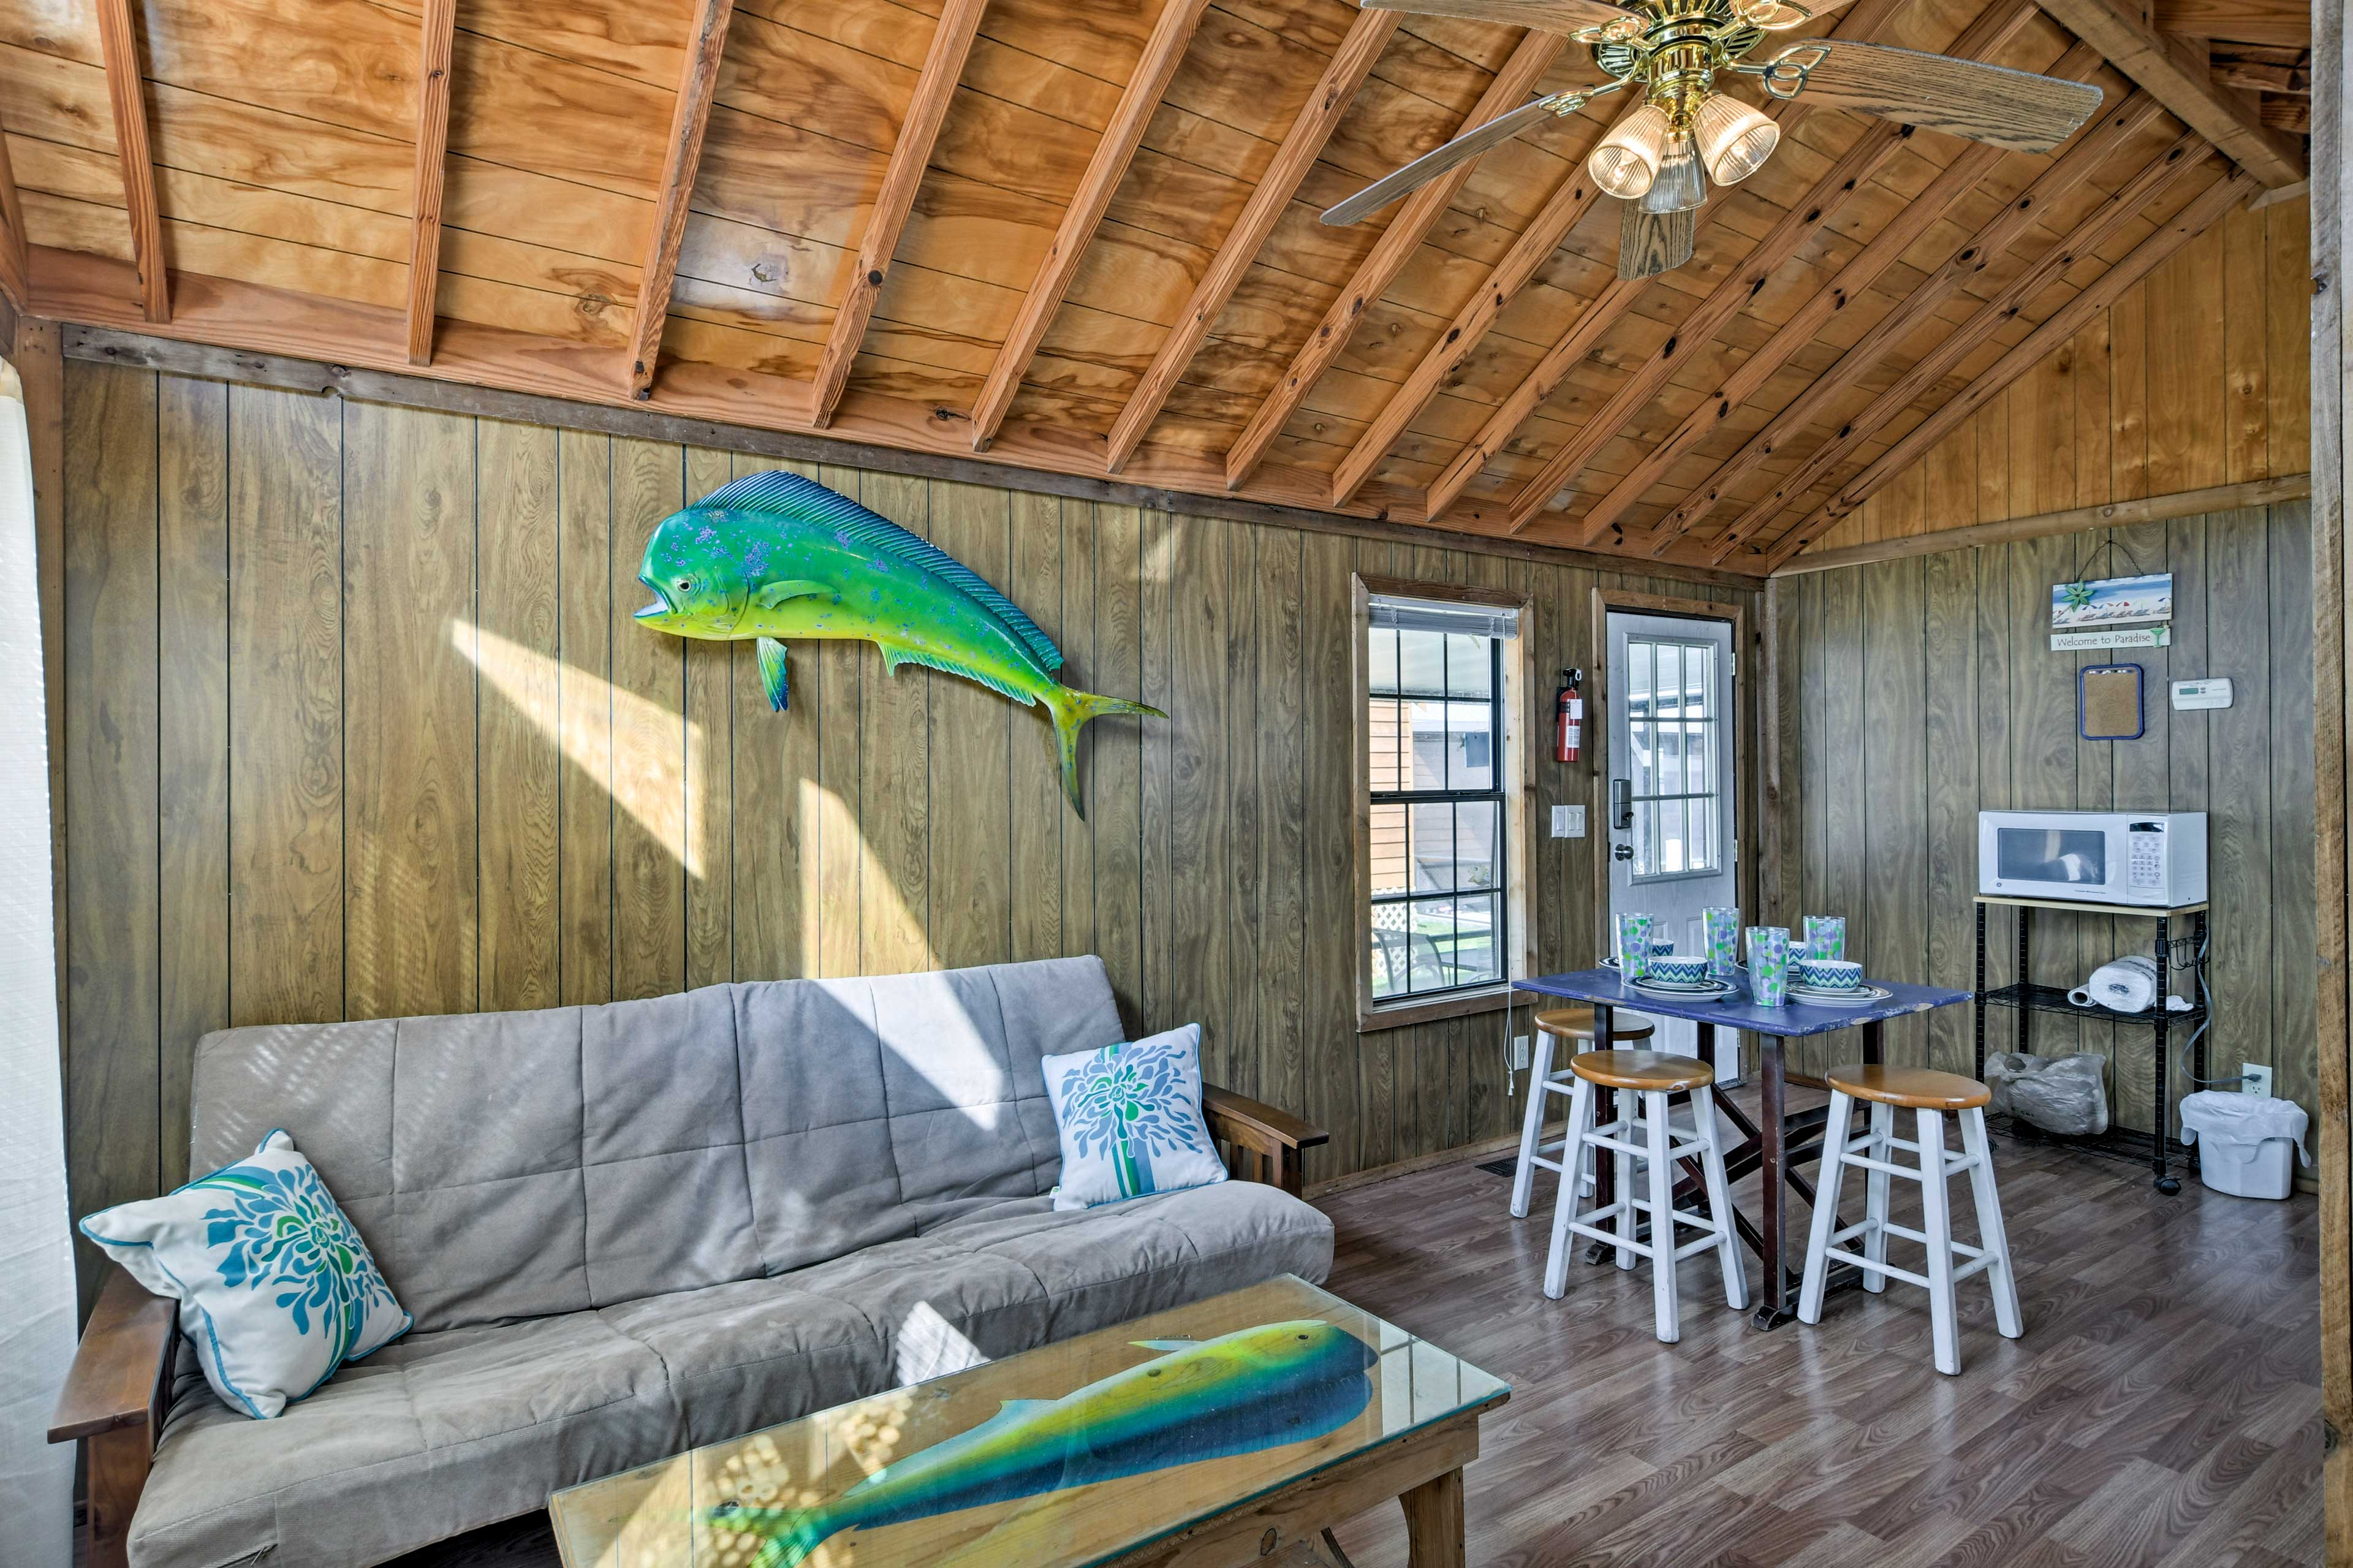 The interior is tastefully outfitted with wood paneling and coastal-themed decor.